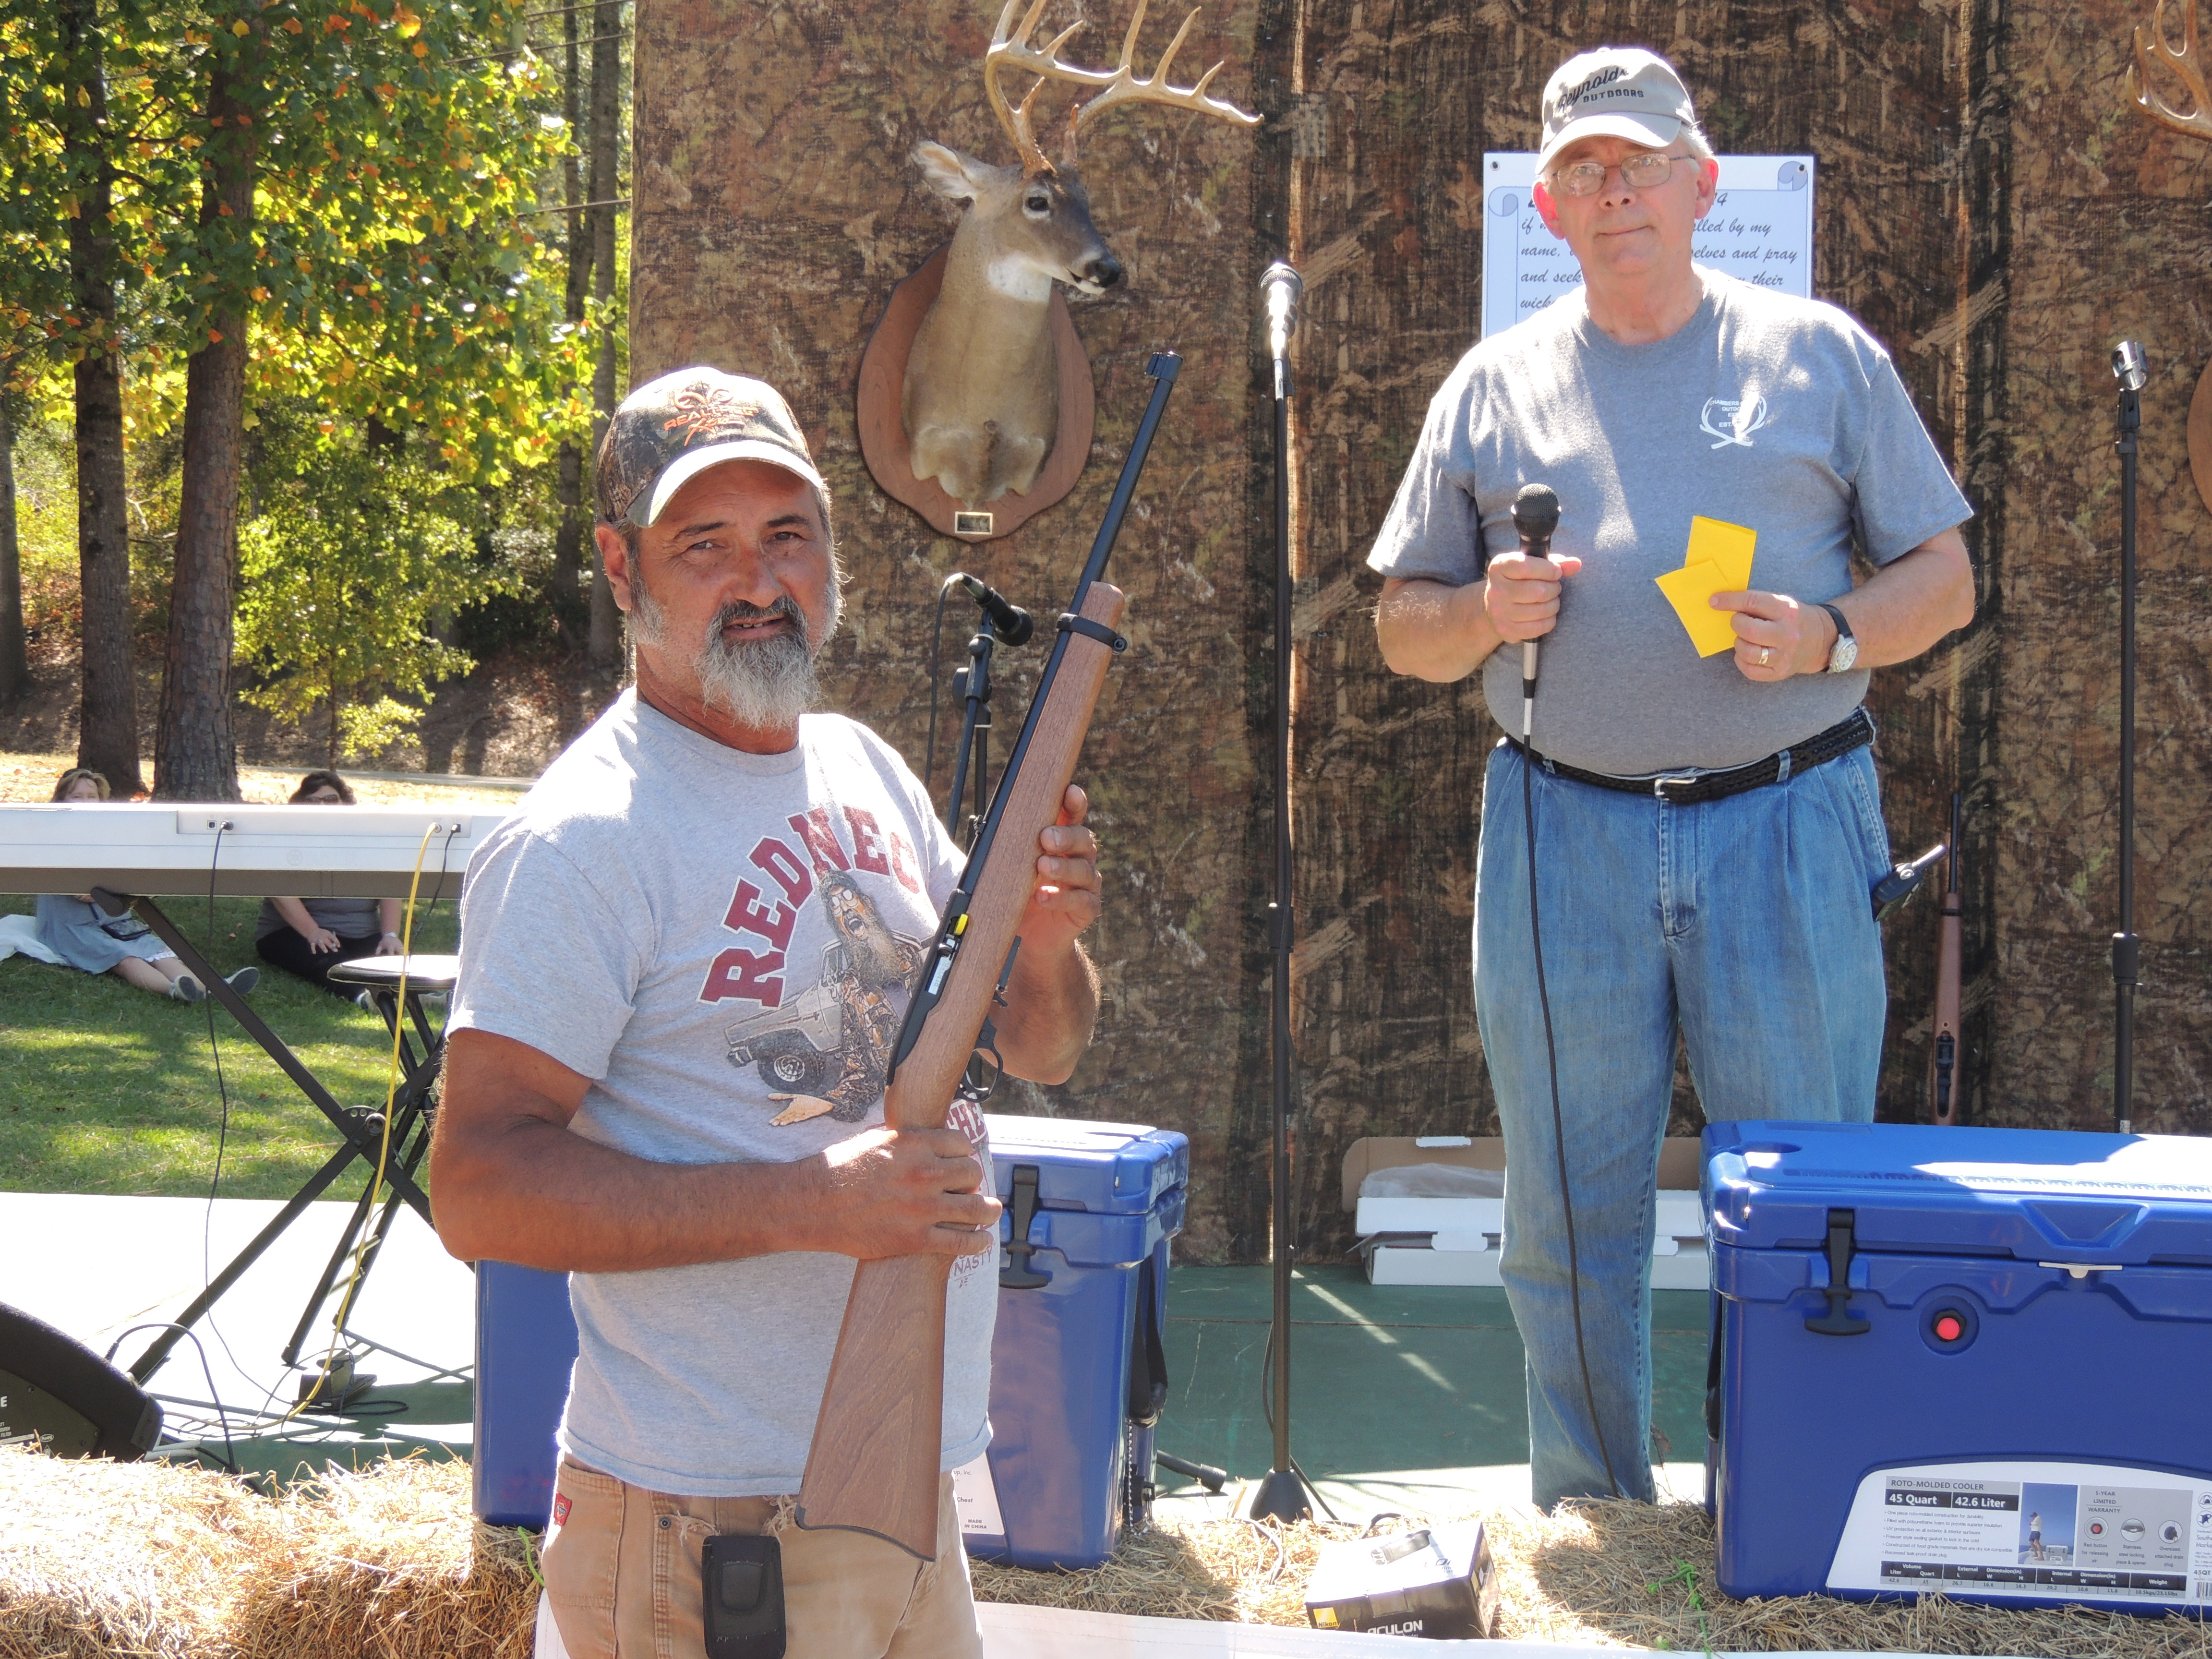 Chambers County Outdoor Expo; LHBC; Expo; Alabama; Alabama Outdoors; Praise; God is good